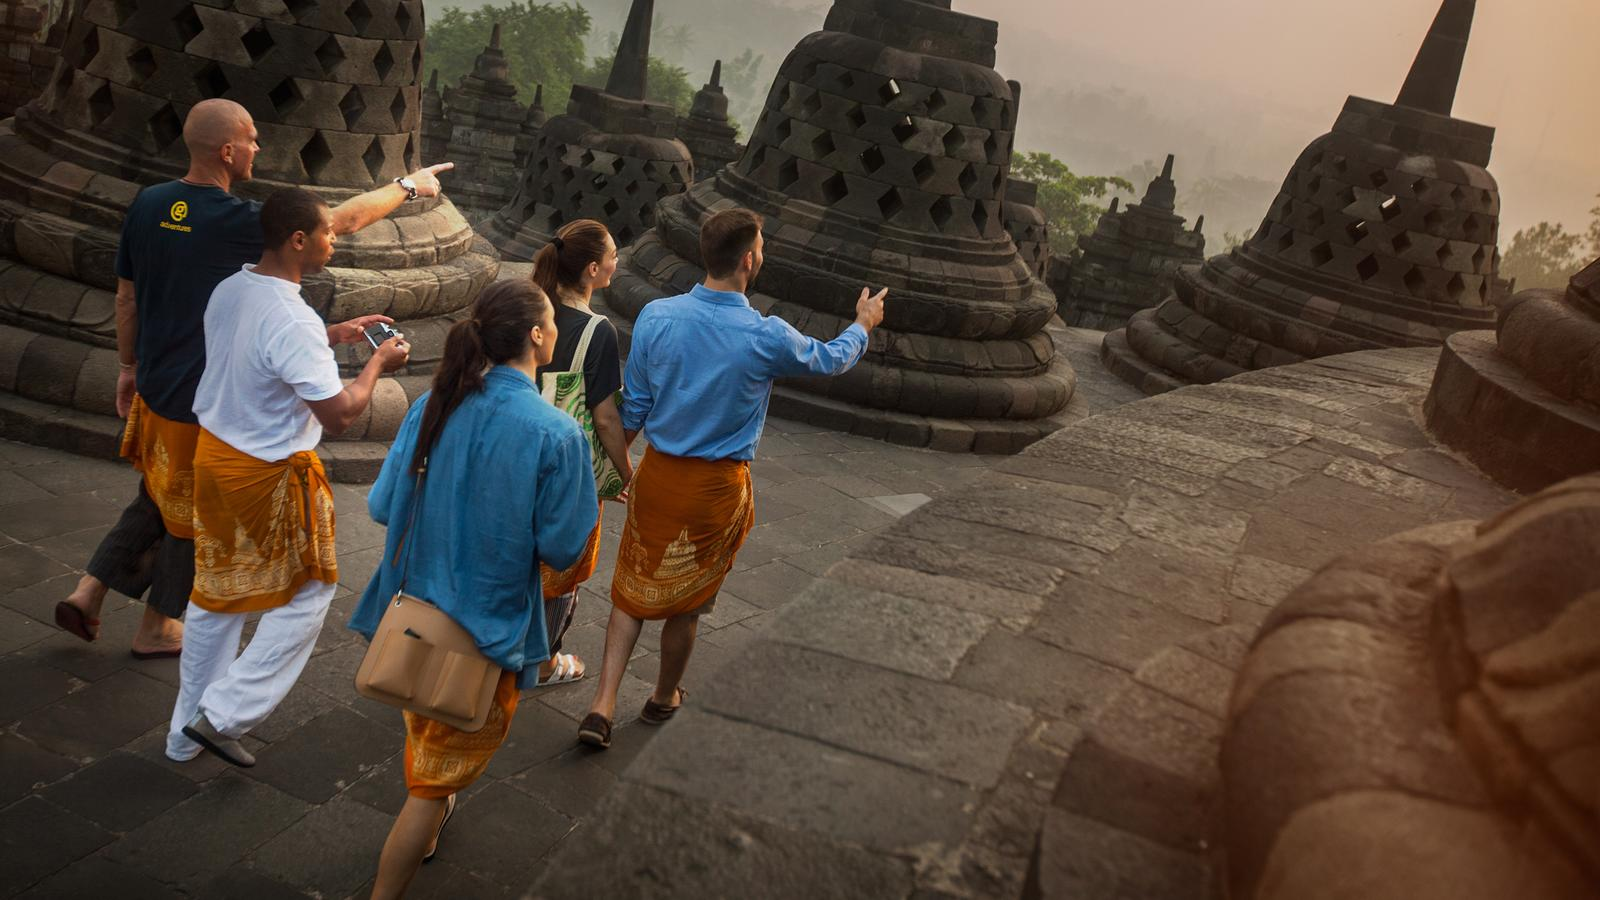 Leading the travellers through Borobodur Temple in Java